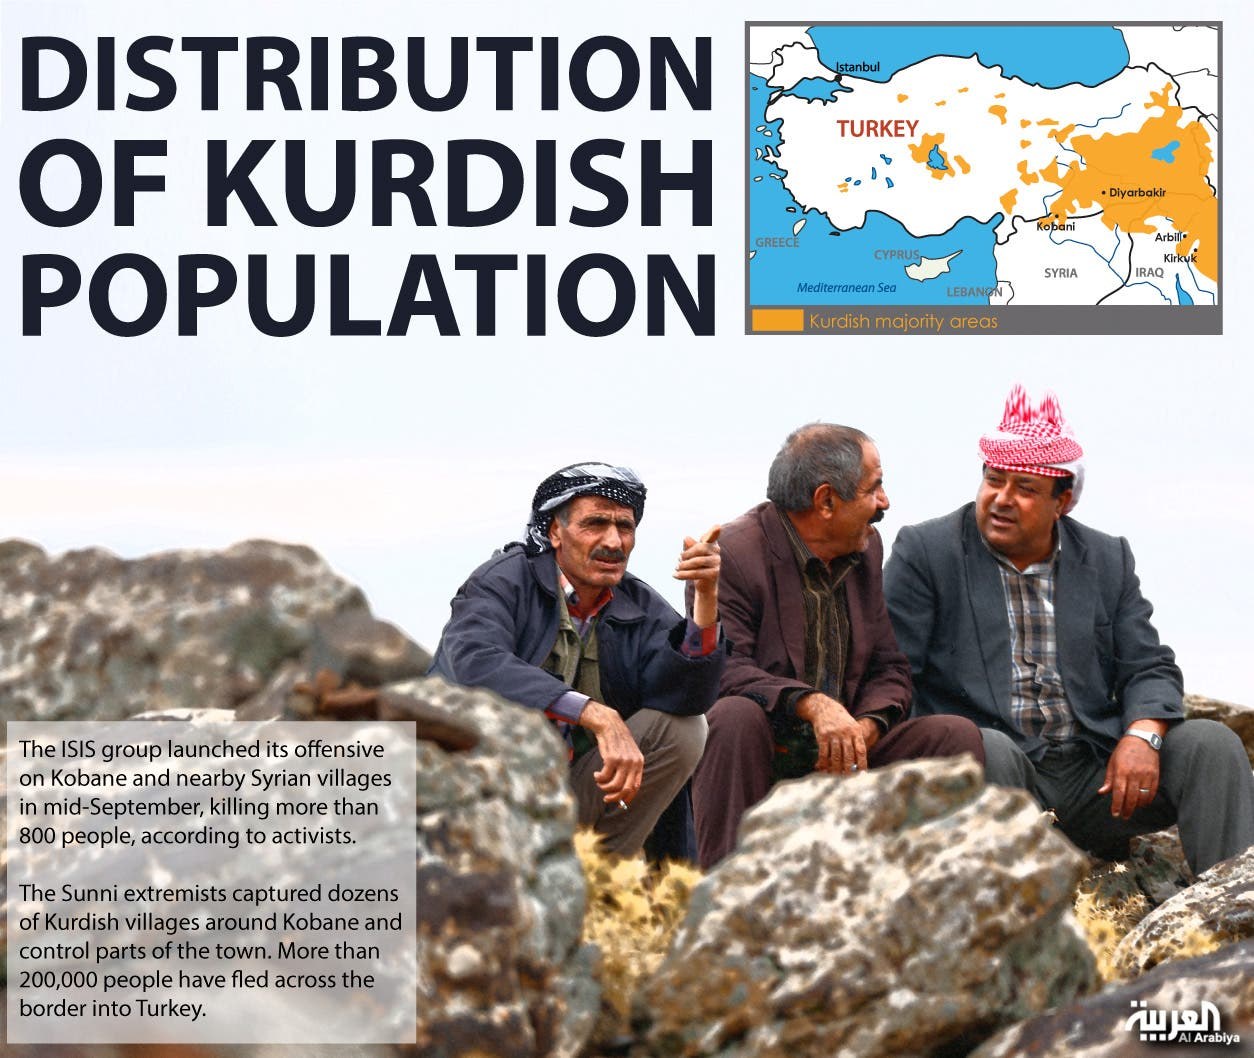 Infographic: Distribution of Kurdish population